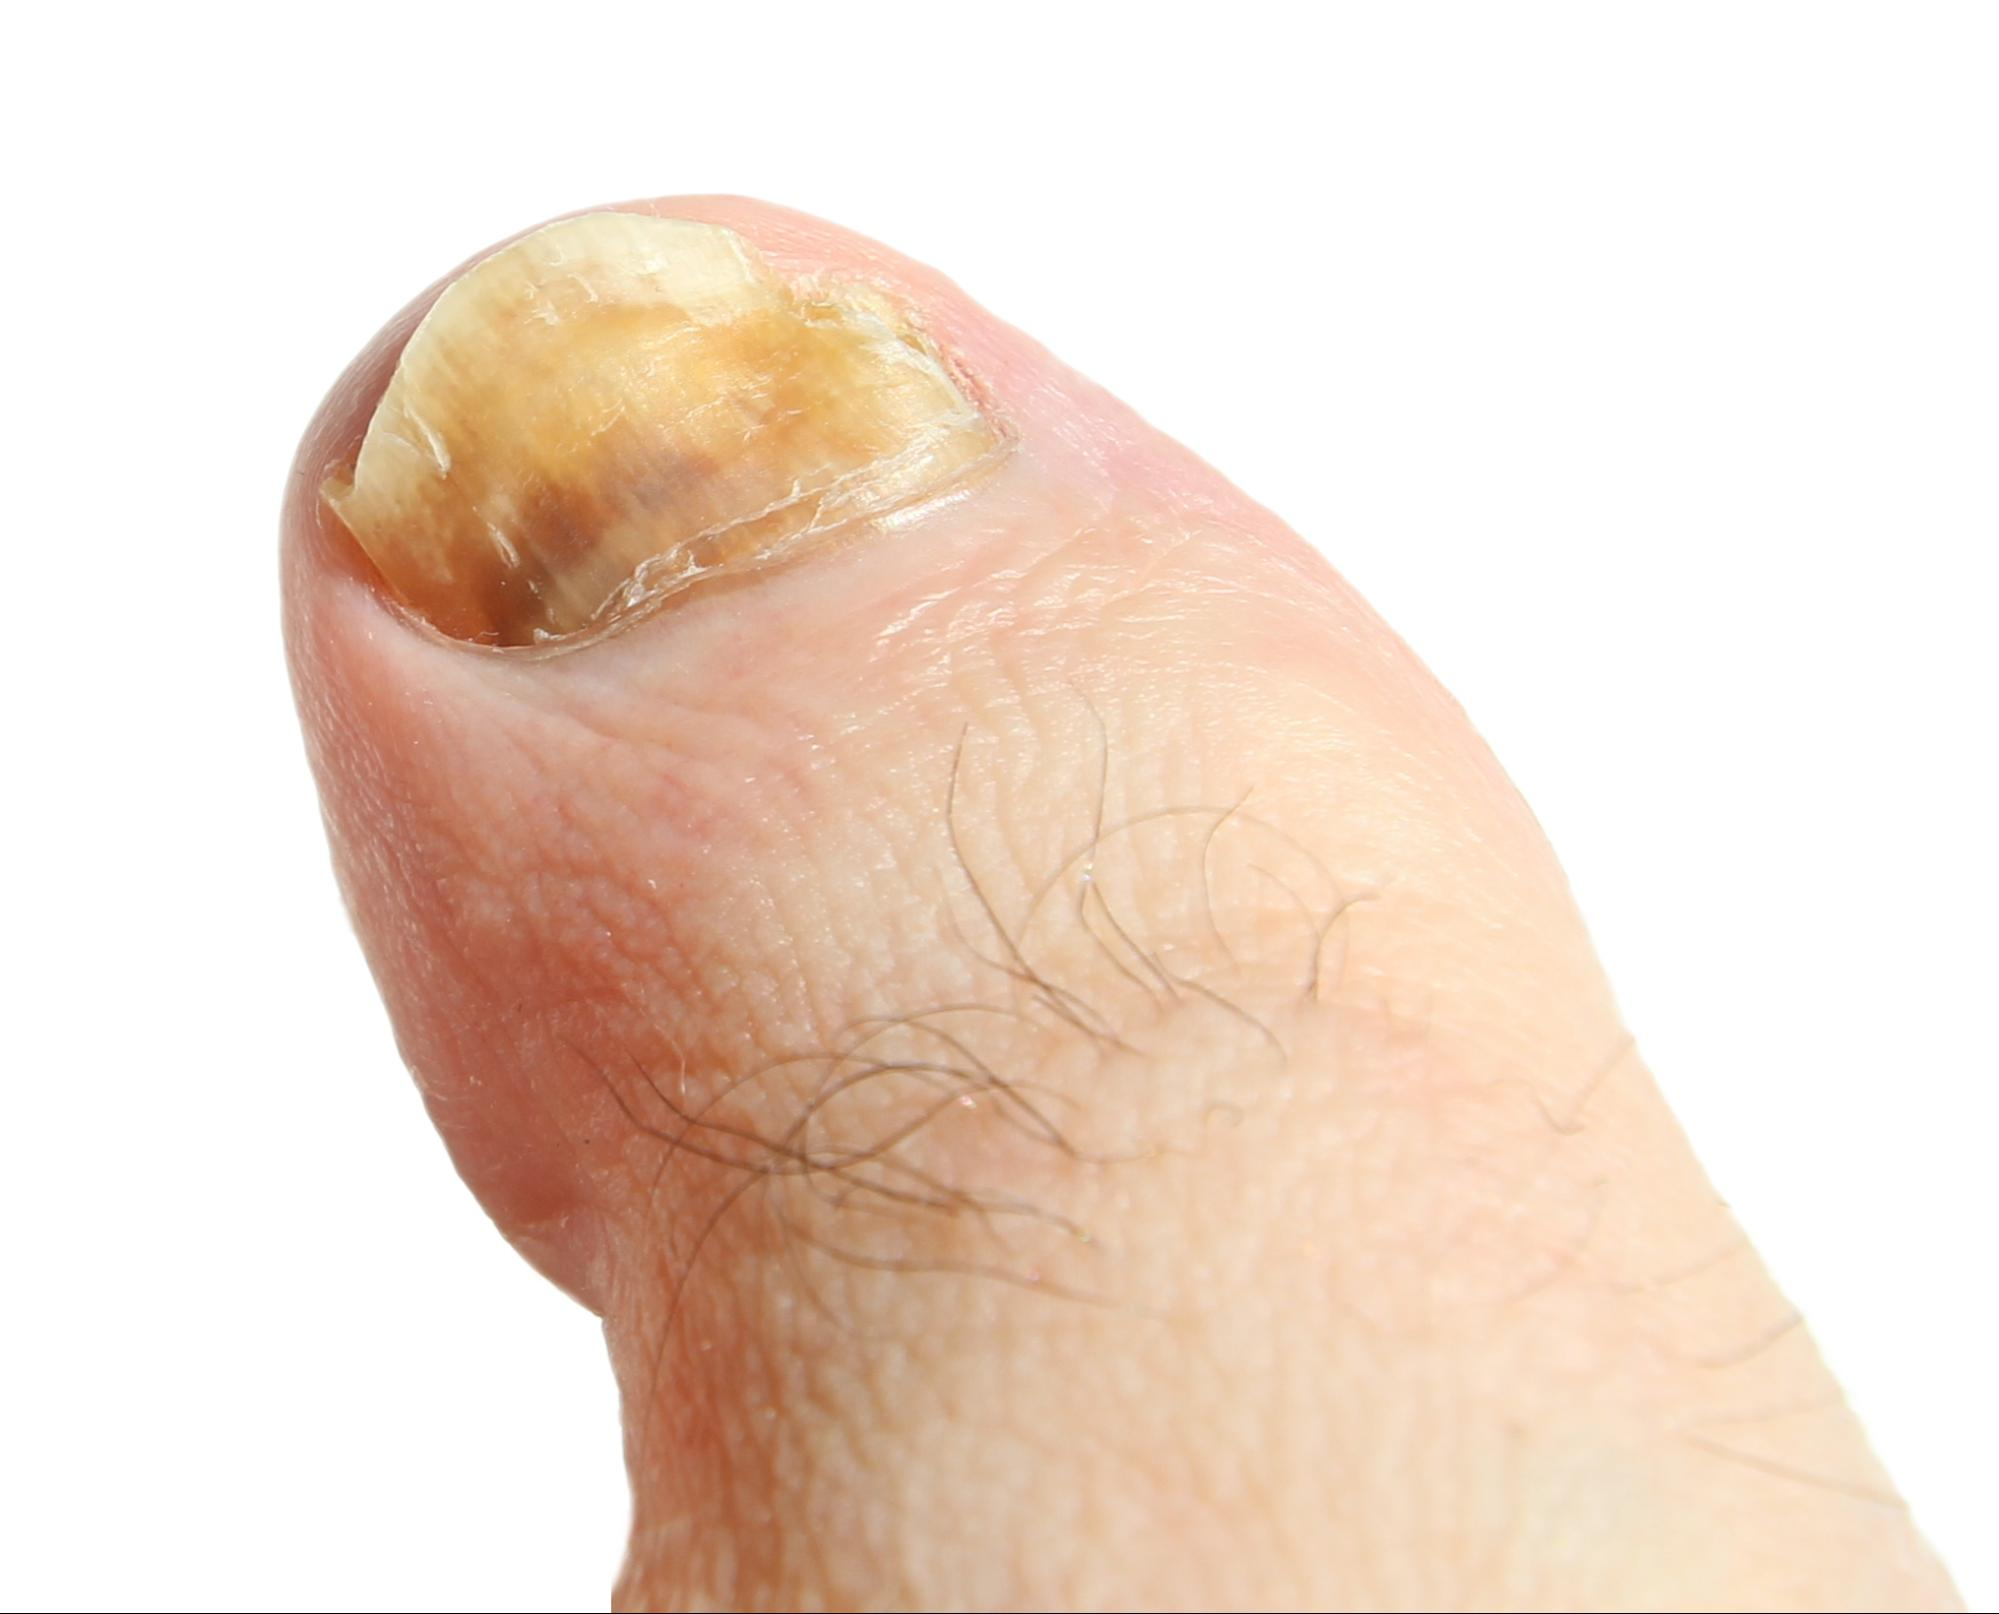 The Ultimate Guide to Understanding and Treating Finger and Toenail